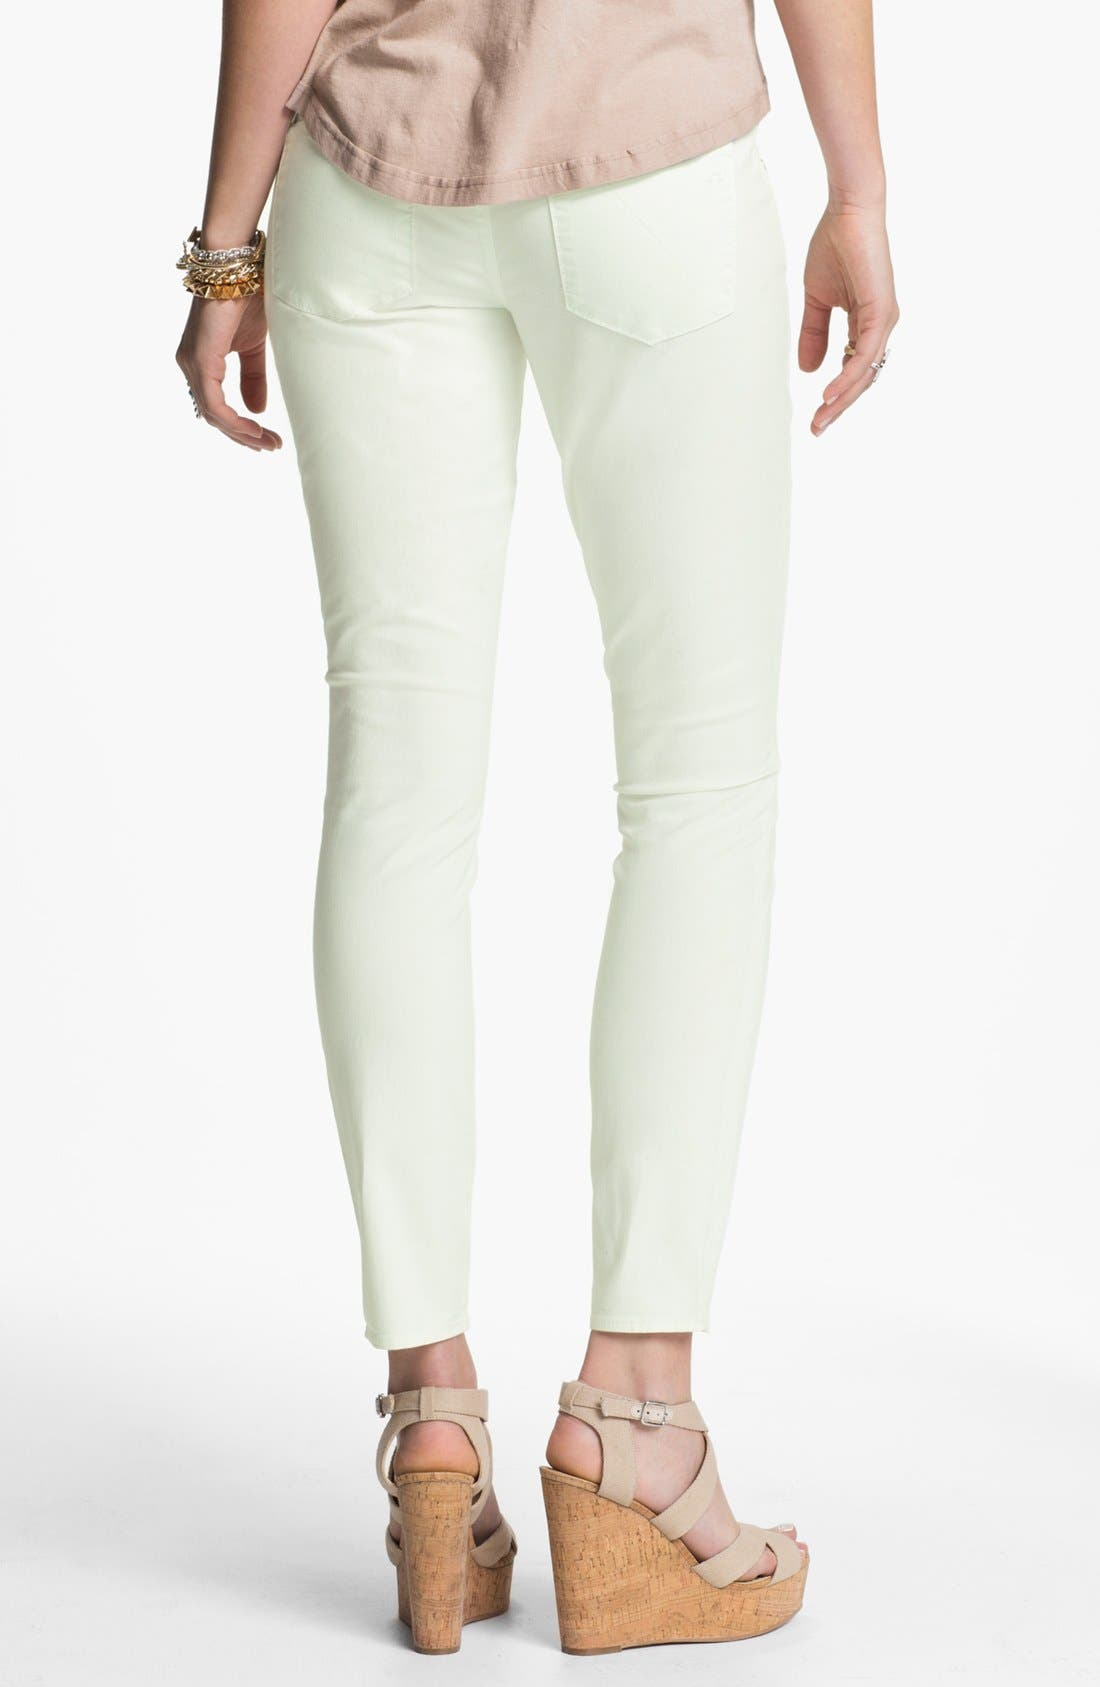 Alternate Image 1 Selected - Articles of Society 'Olivia' Skinny Pants (Mint) (Juniors) (Online Only)